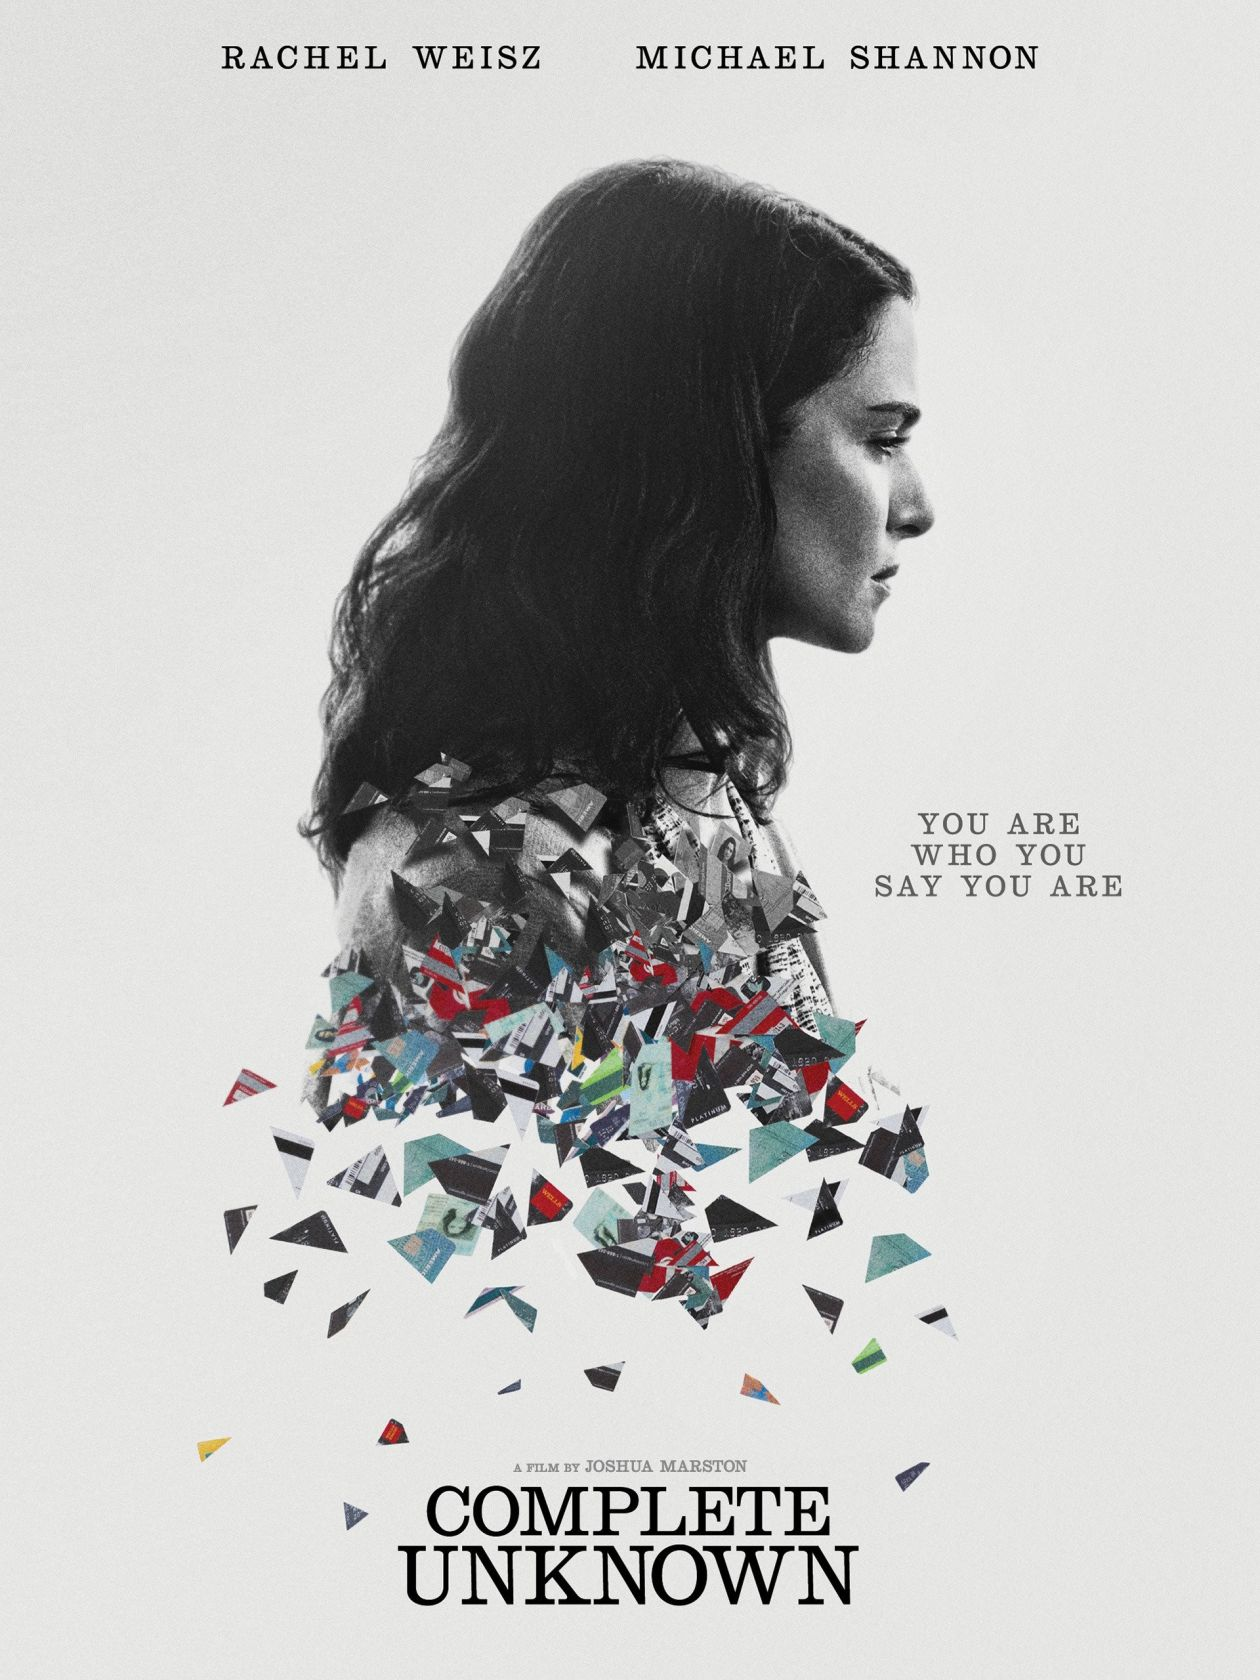 Rachel Weisz | Complete Unknown / Joshua Marston 2016 Movie Poster / Affiche du film